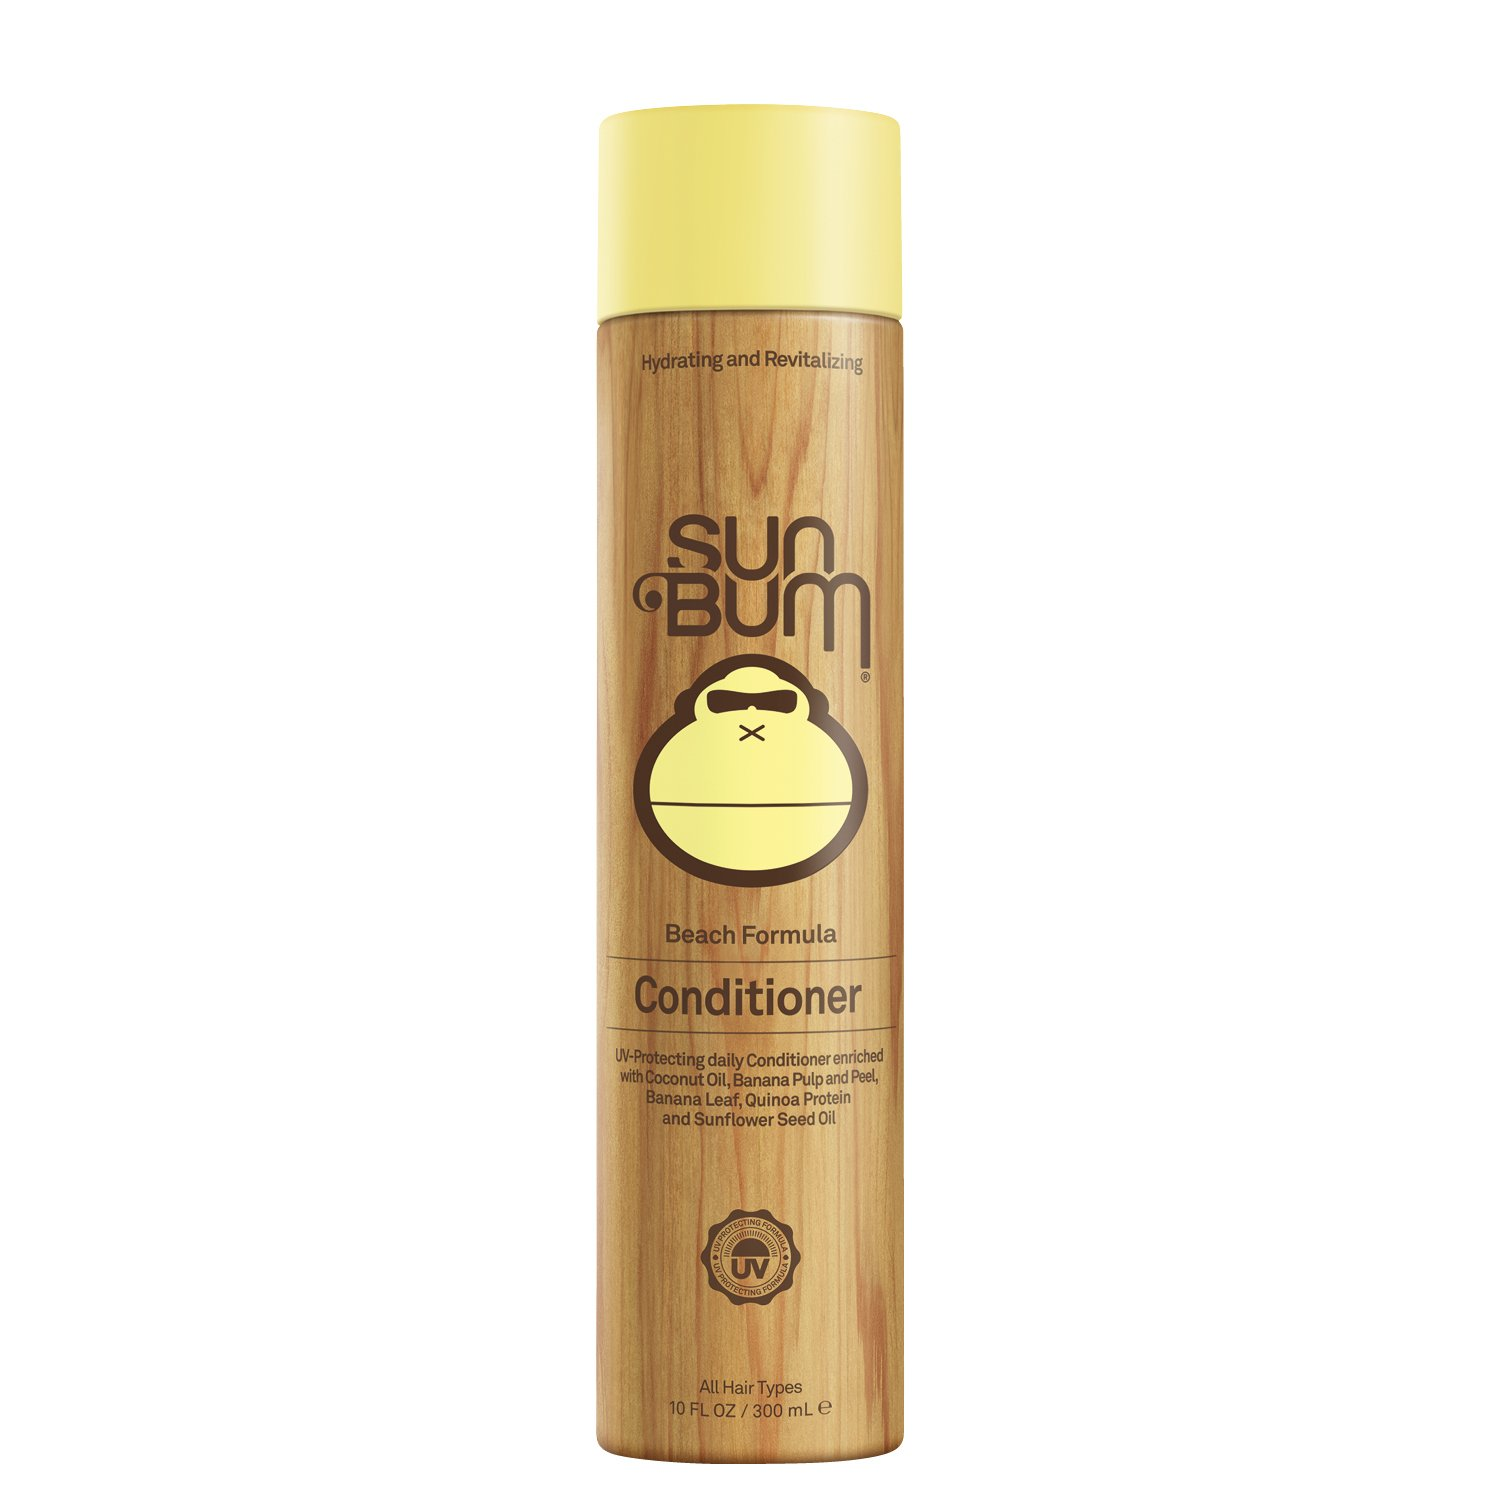 Sun Bum Beach Formula Revitalizing Conditioner, 10 oz. Bottle, 1 Count, UV Protection for Hair, Smoothing and Shine Enhancing, Paraben Free, Gluten Free, Vegan